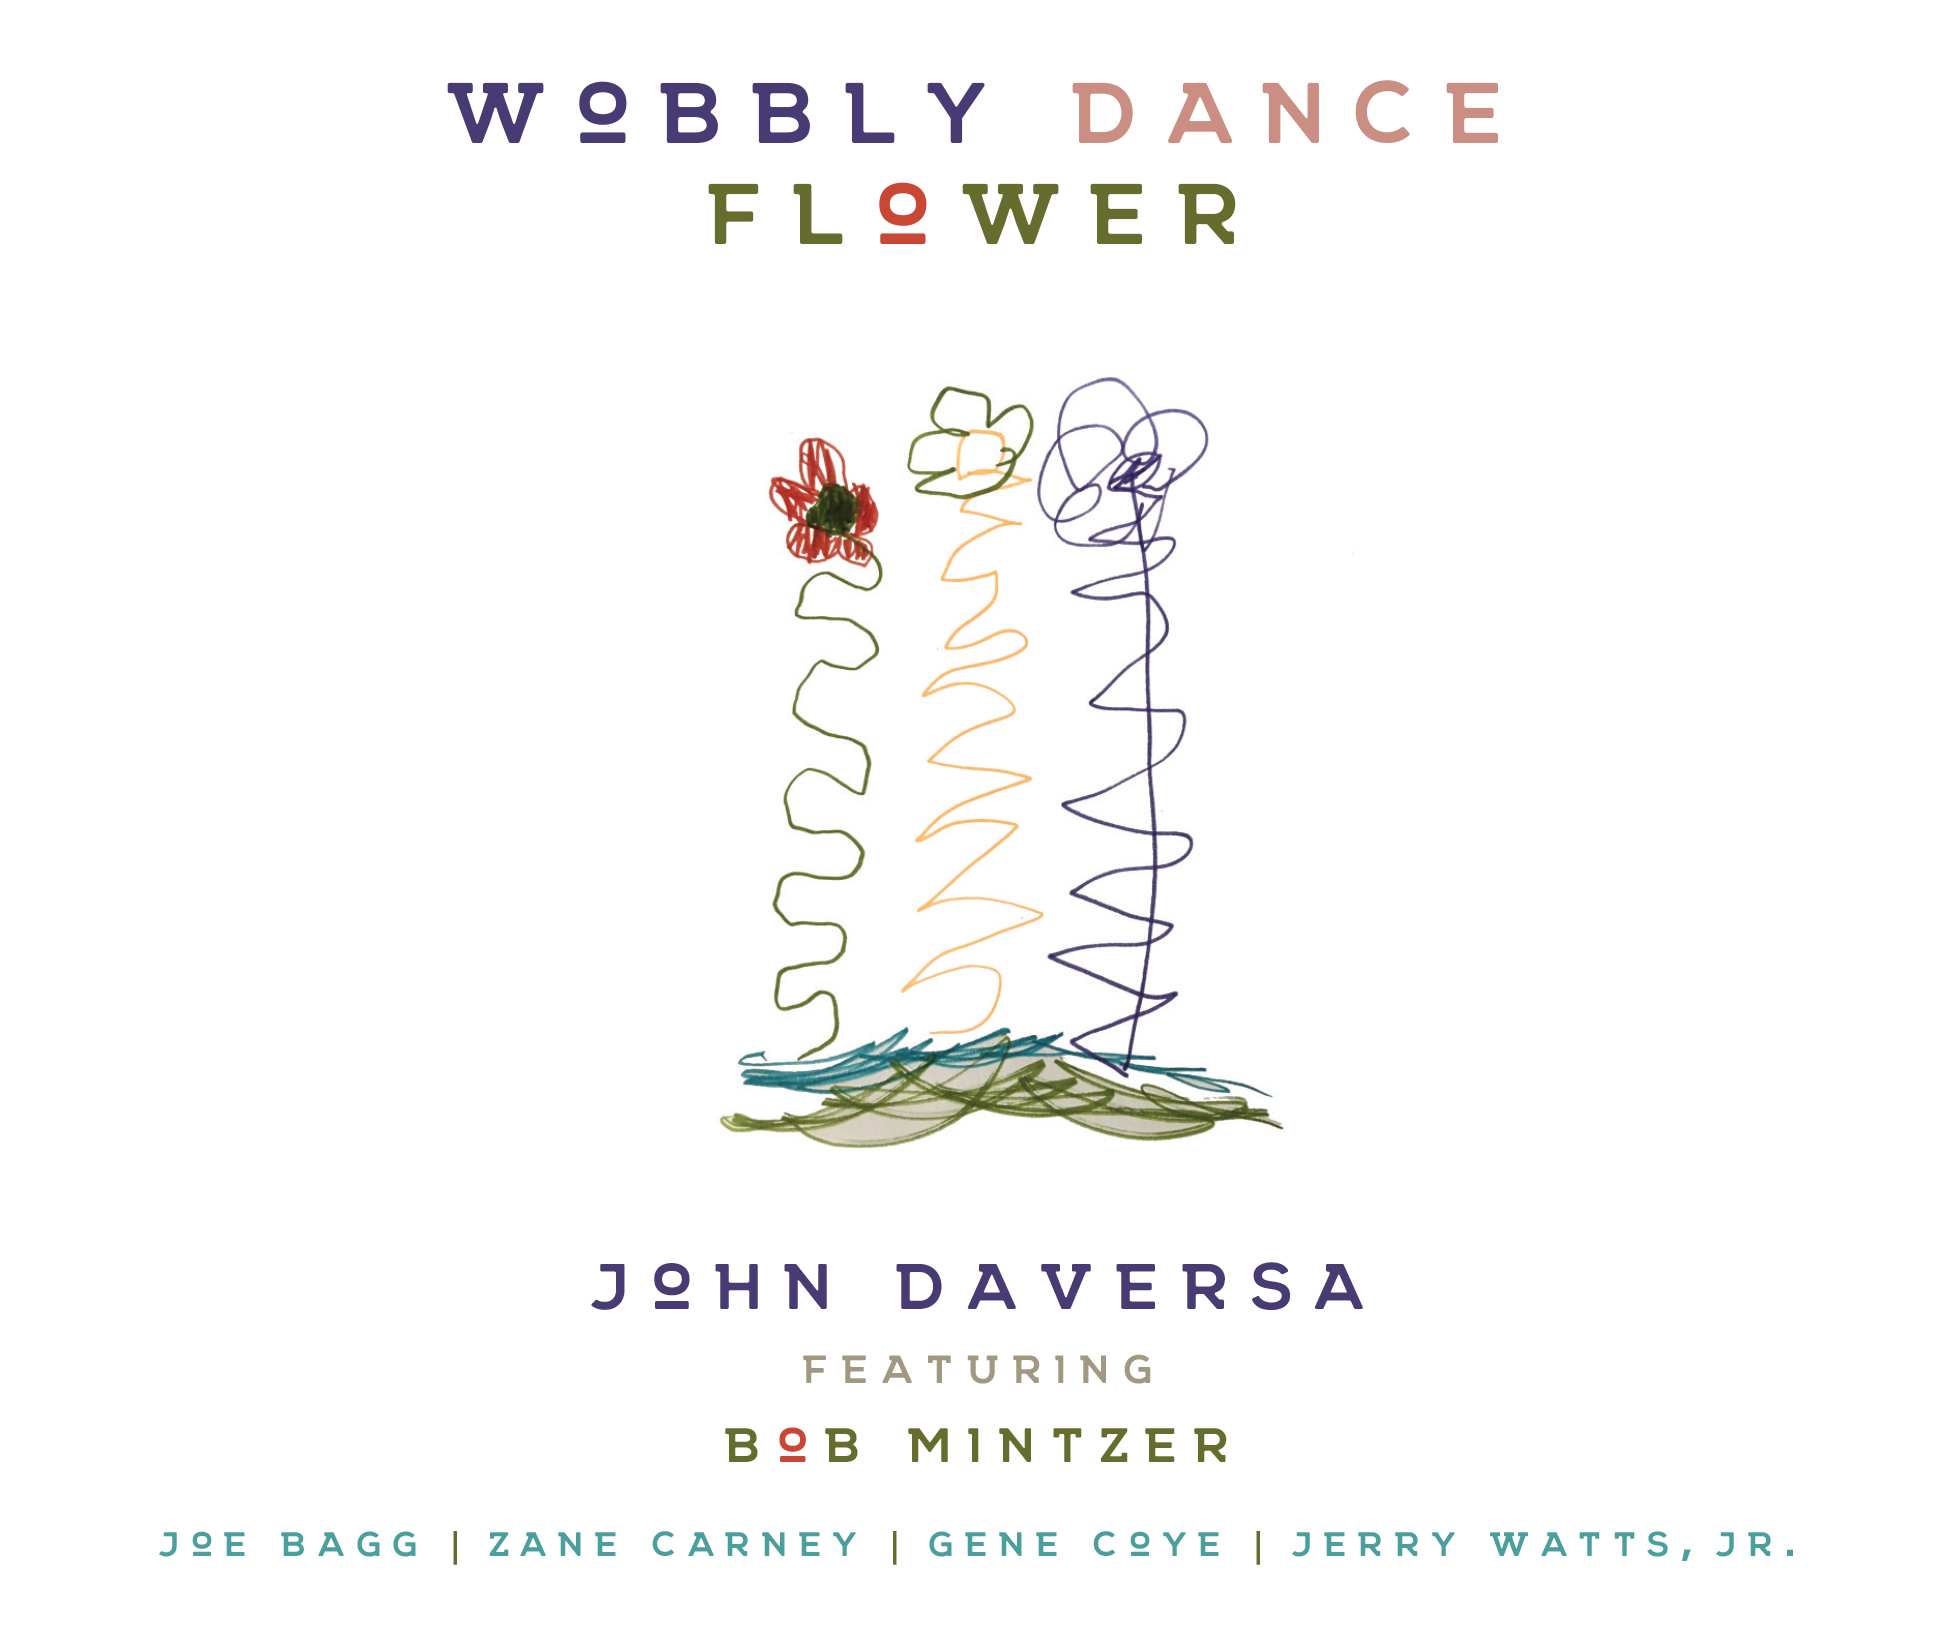 Wobbly Dance Flower